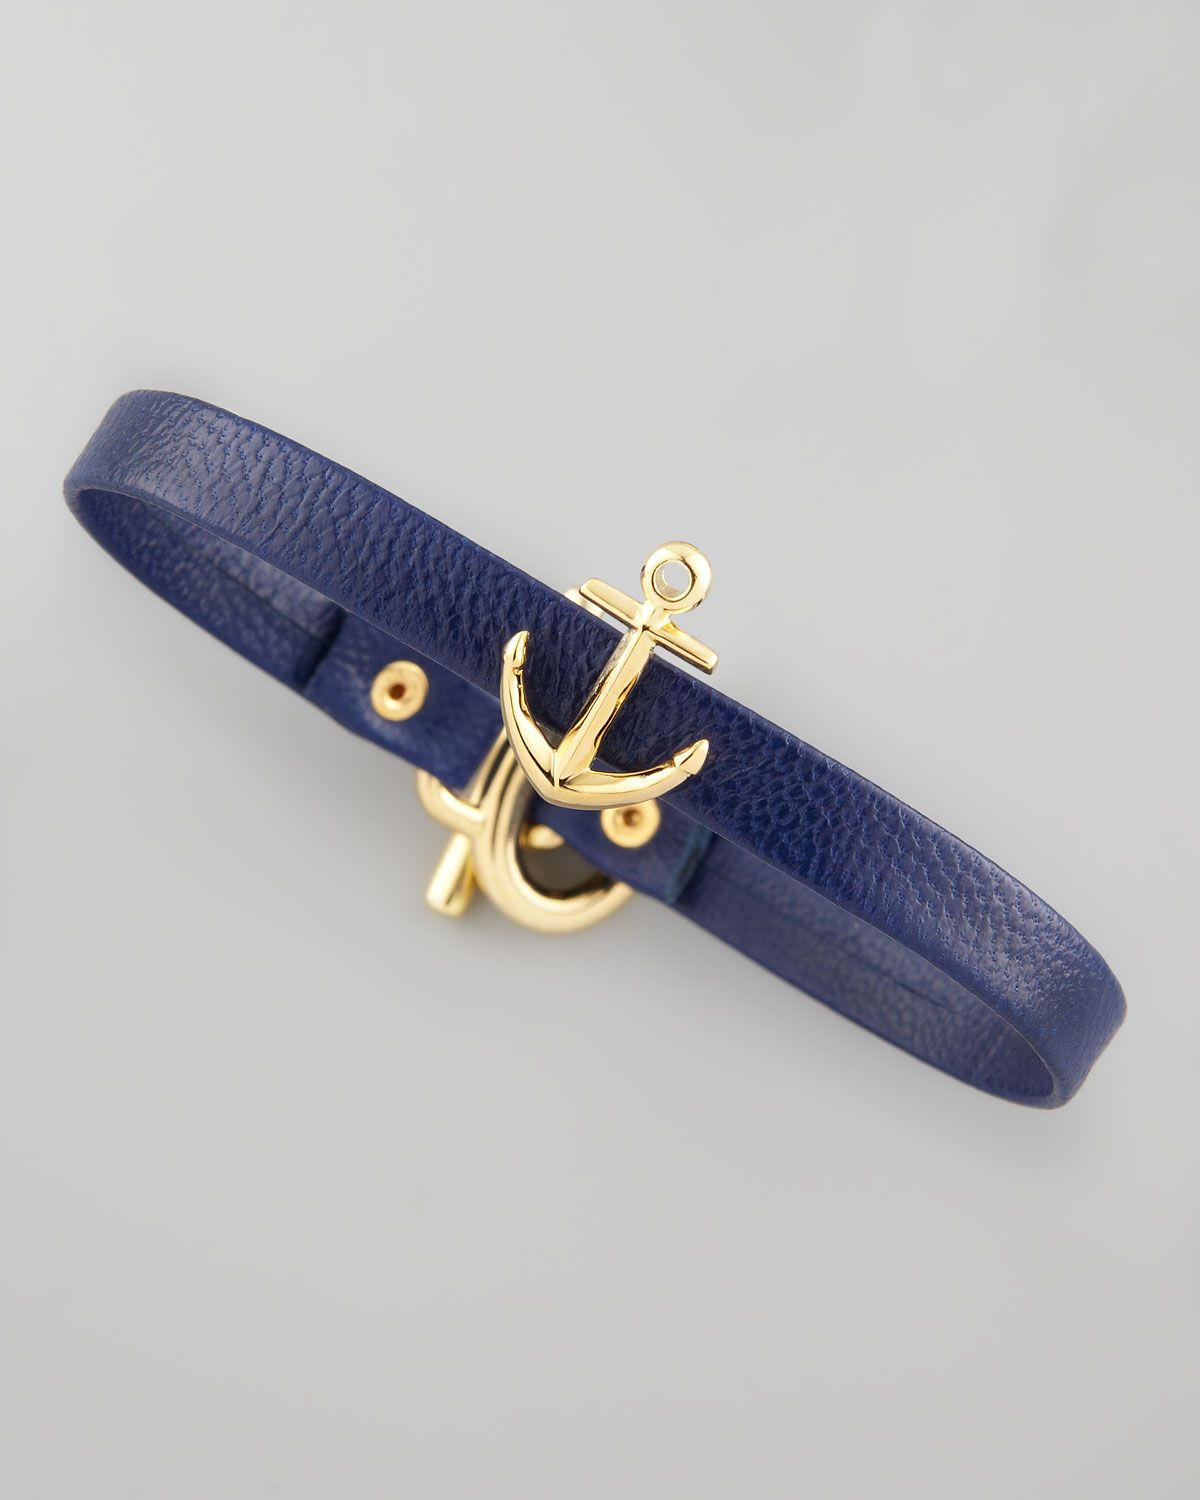 http://harrislove.com/gorjana-anchor-leather-bracelet-p-6462.html